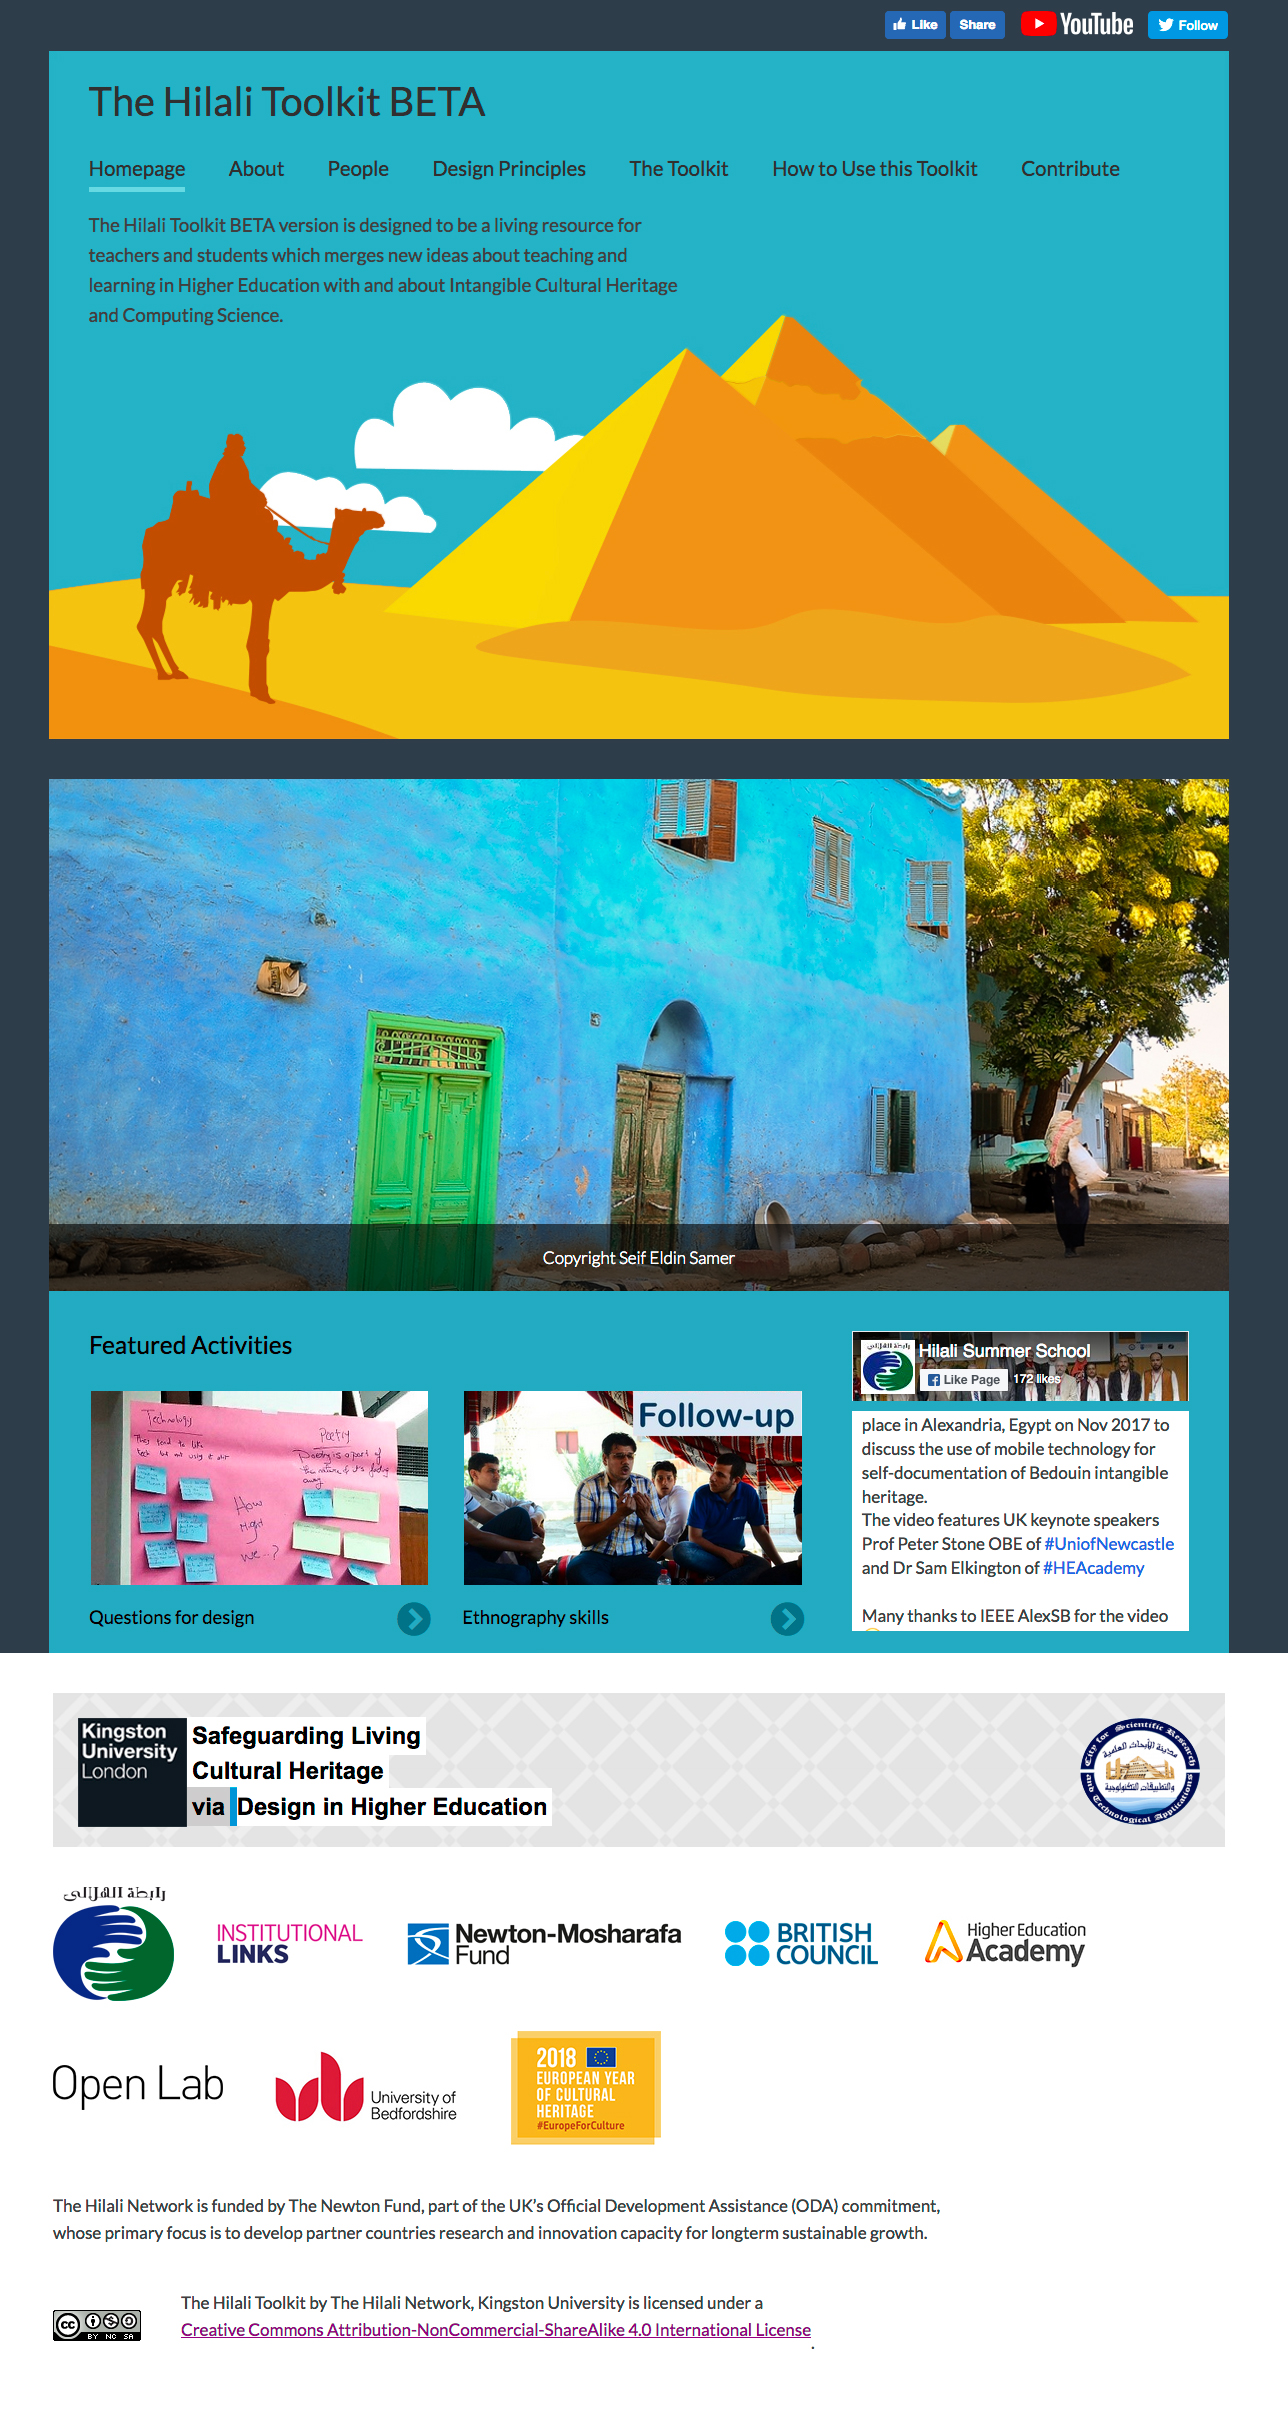 Hilali toolkit website screenshot including illustration of camel in front of pyramids and photo of blue house